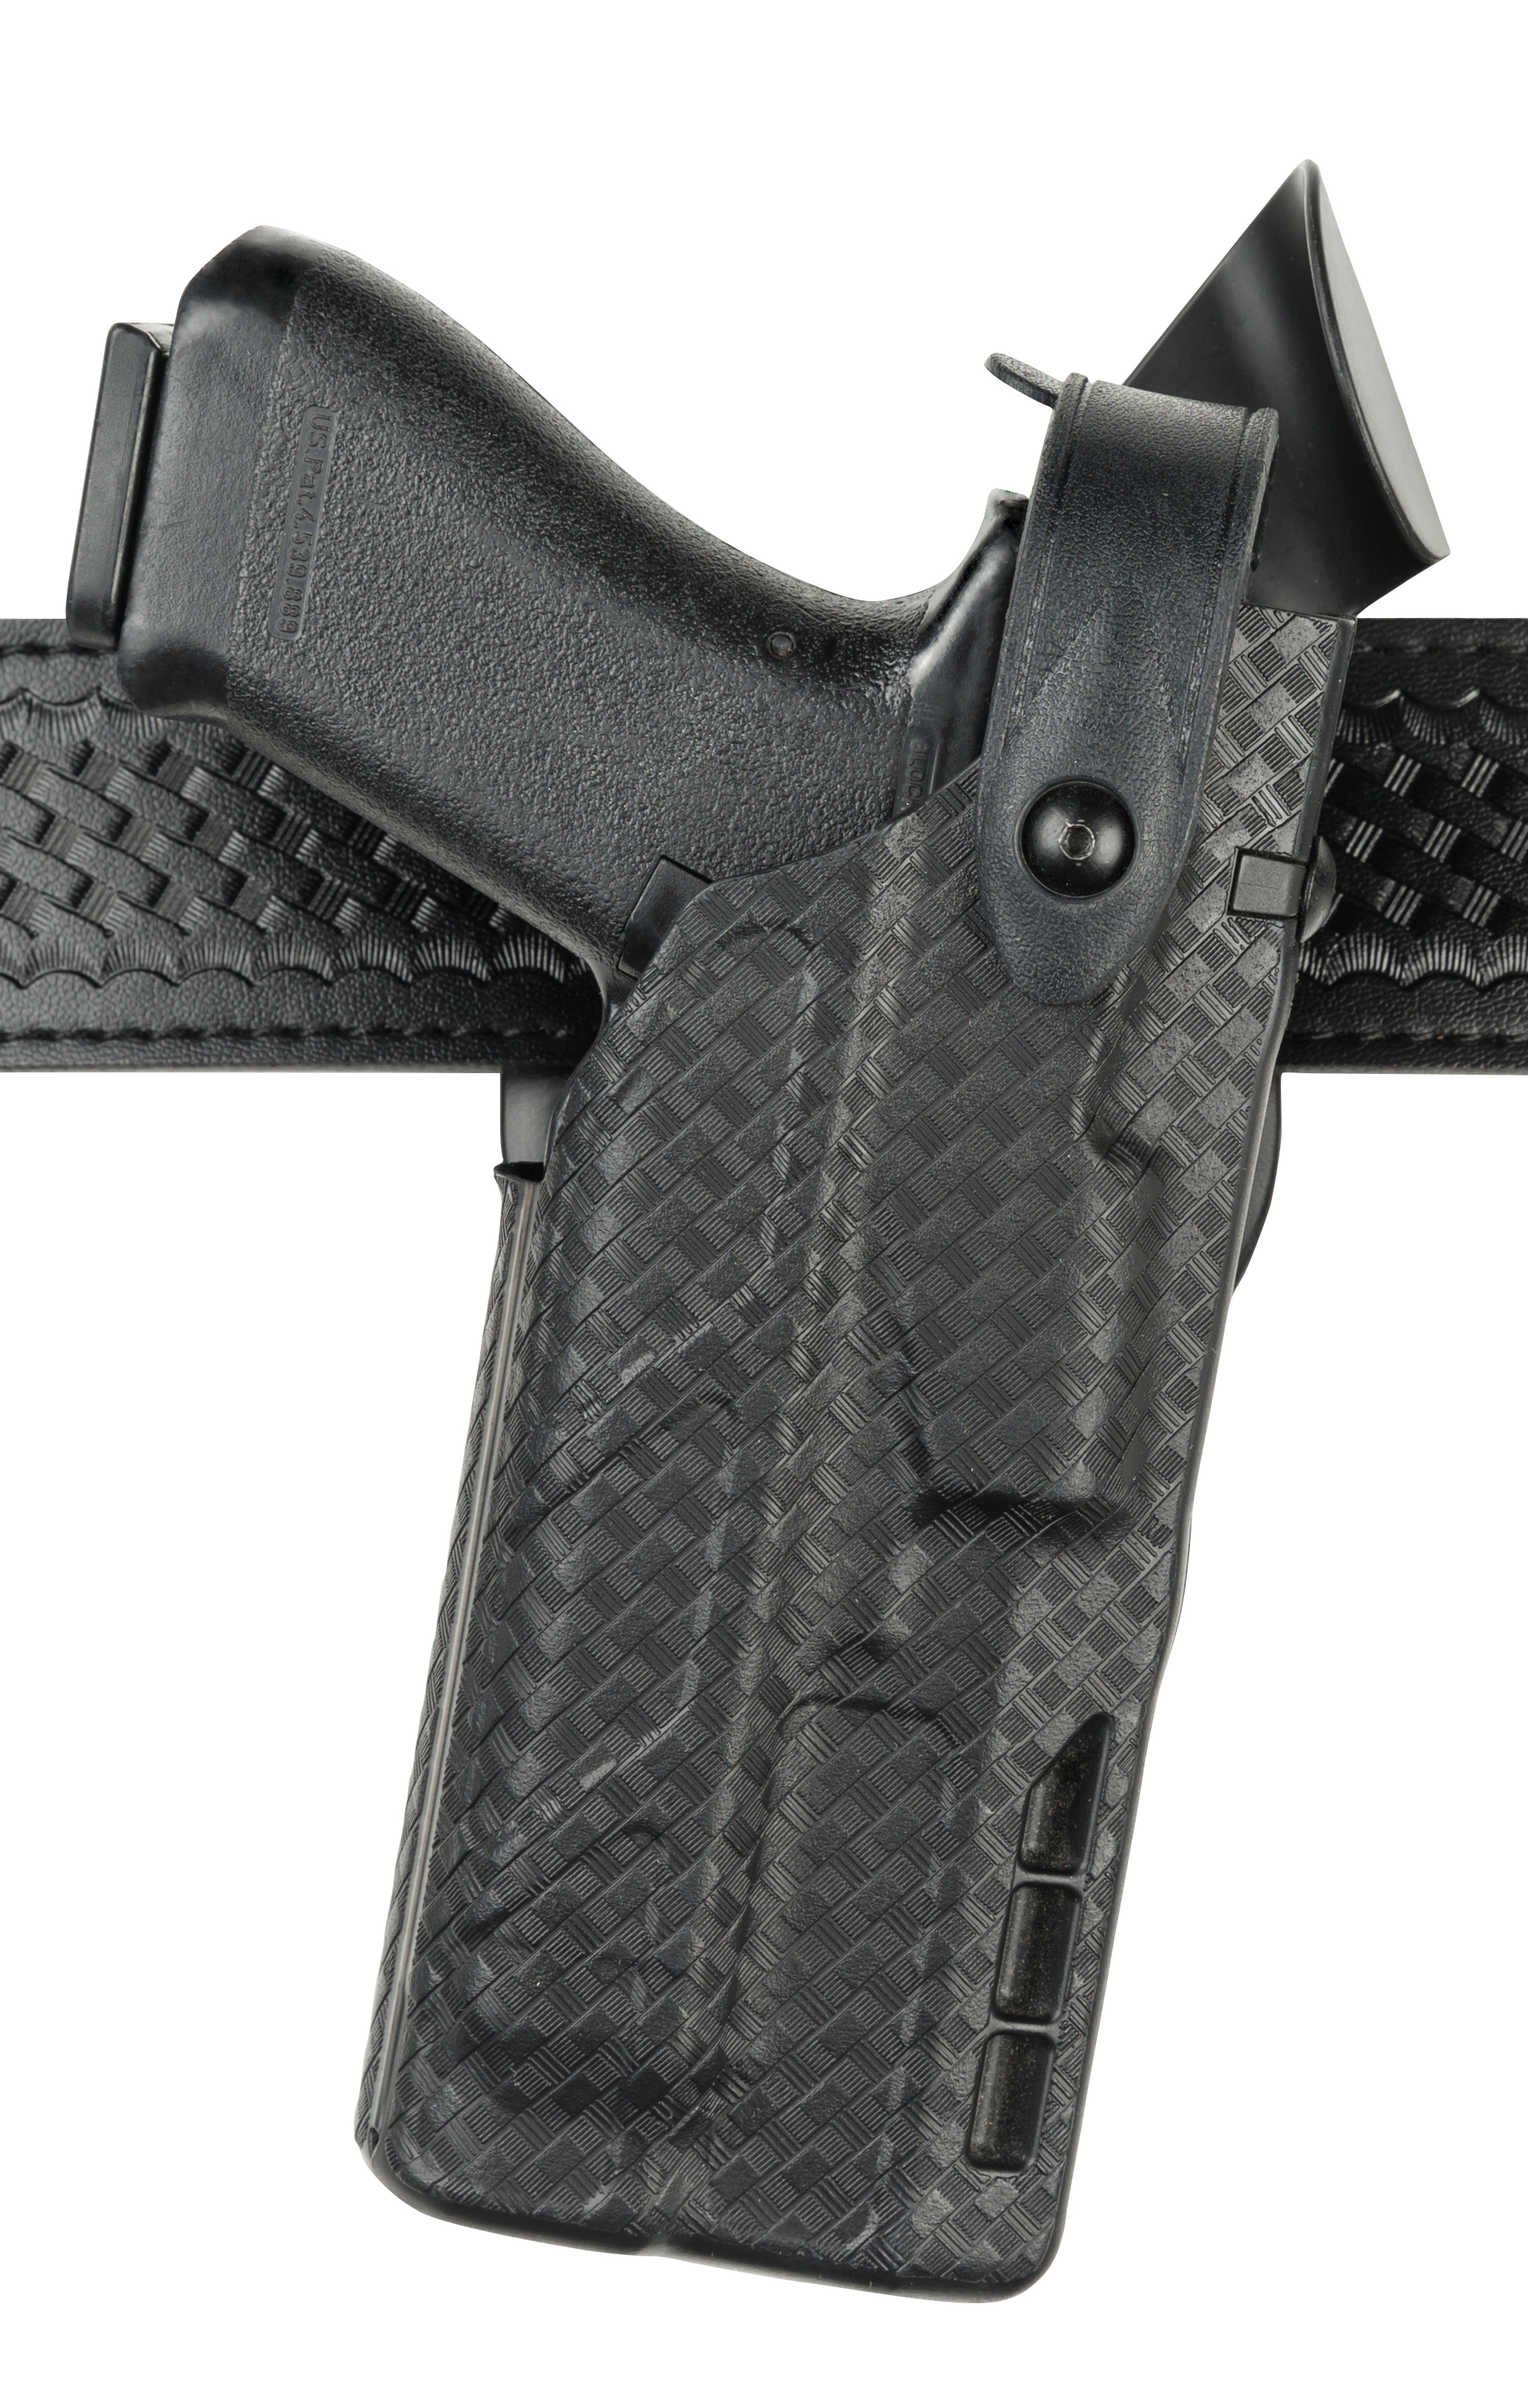 Safariland 7360 7TS ALS/SLS Mid-Ride III Retention Glock 17/22 Duty Holster with ITI Light, Black, Right Hand by Safariland